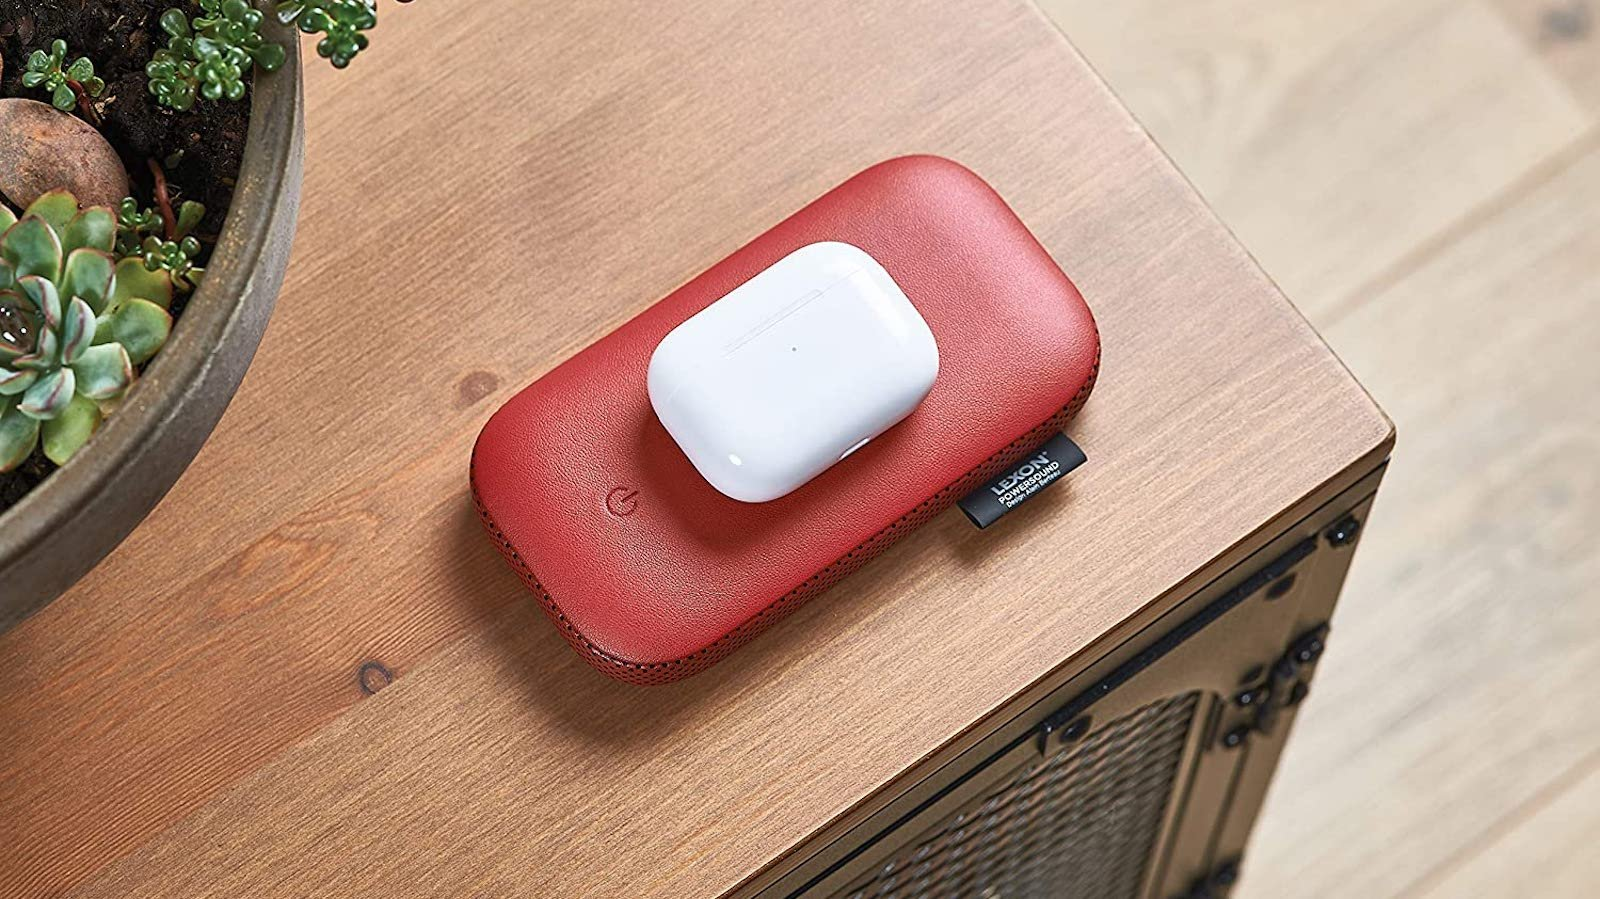 Lexon PowerSound sleek wireless power bank has a 360° Bluetooth speaker and uses no wires